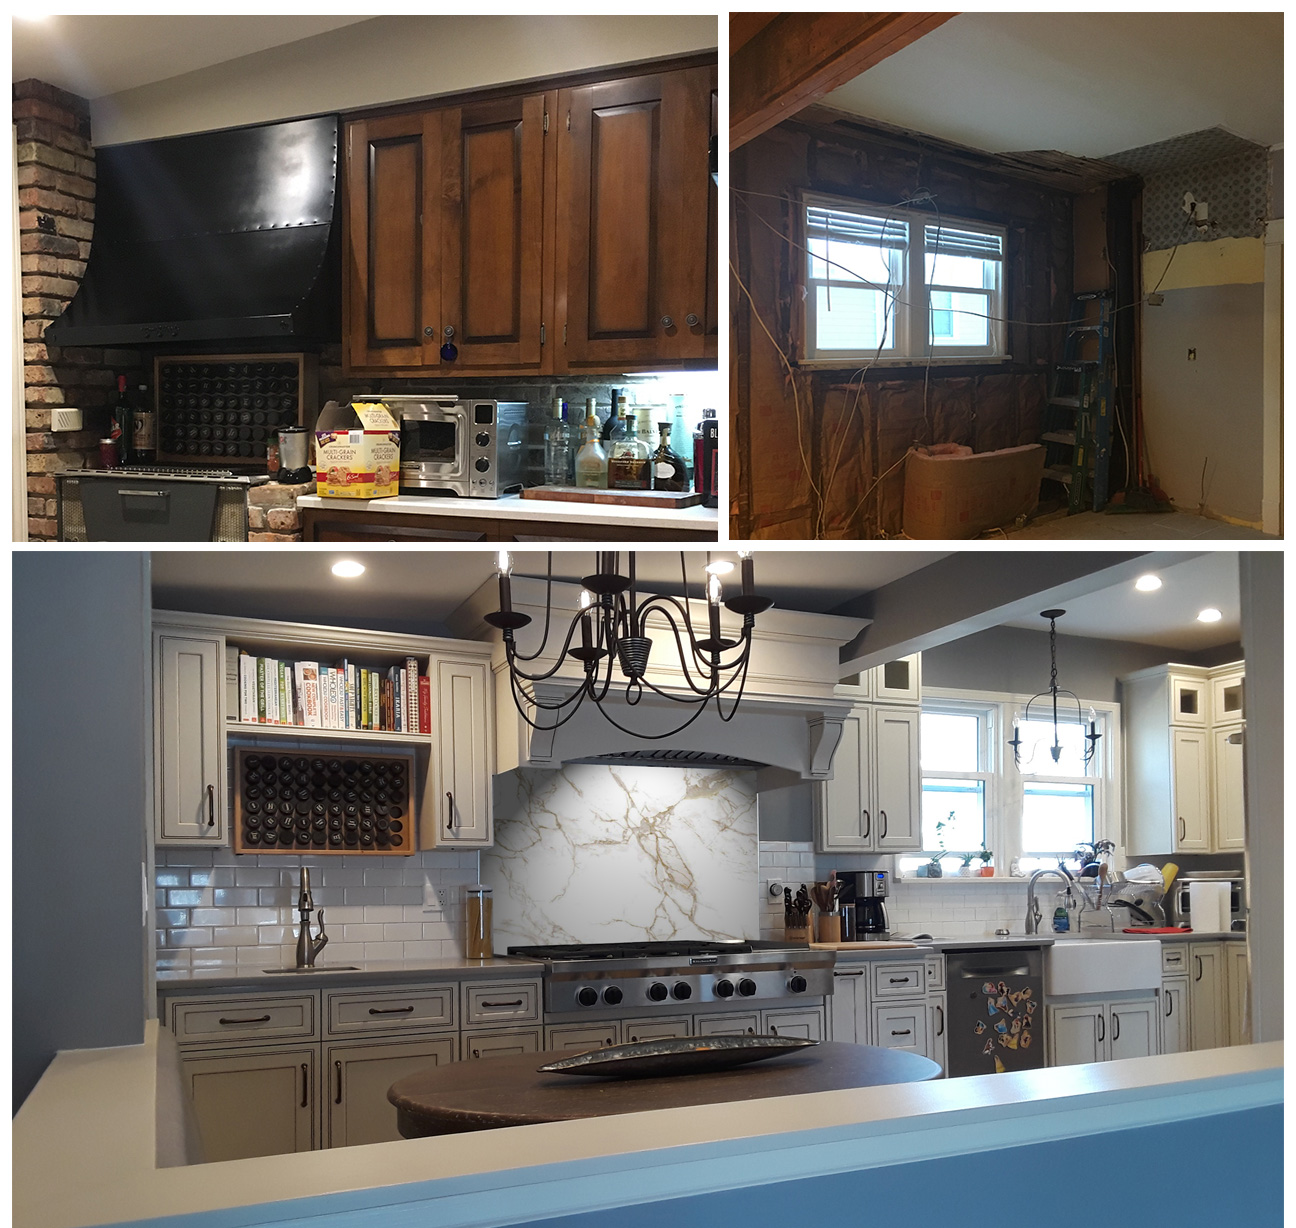 Remodel Design Me Design And Construction Northwest Indiana S Premier Remodeling